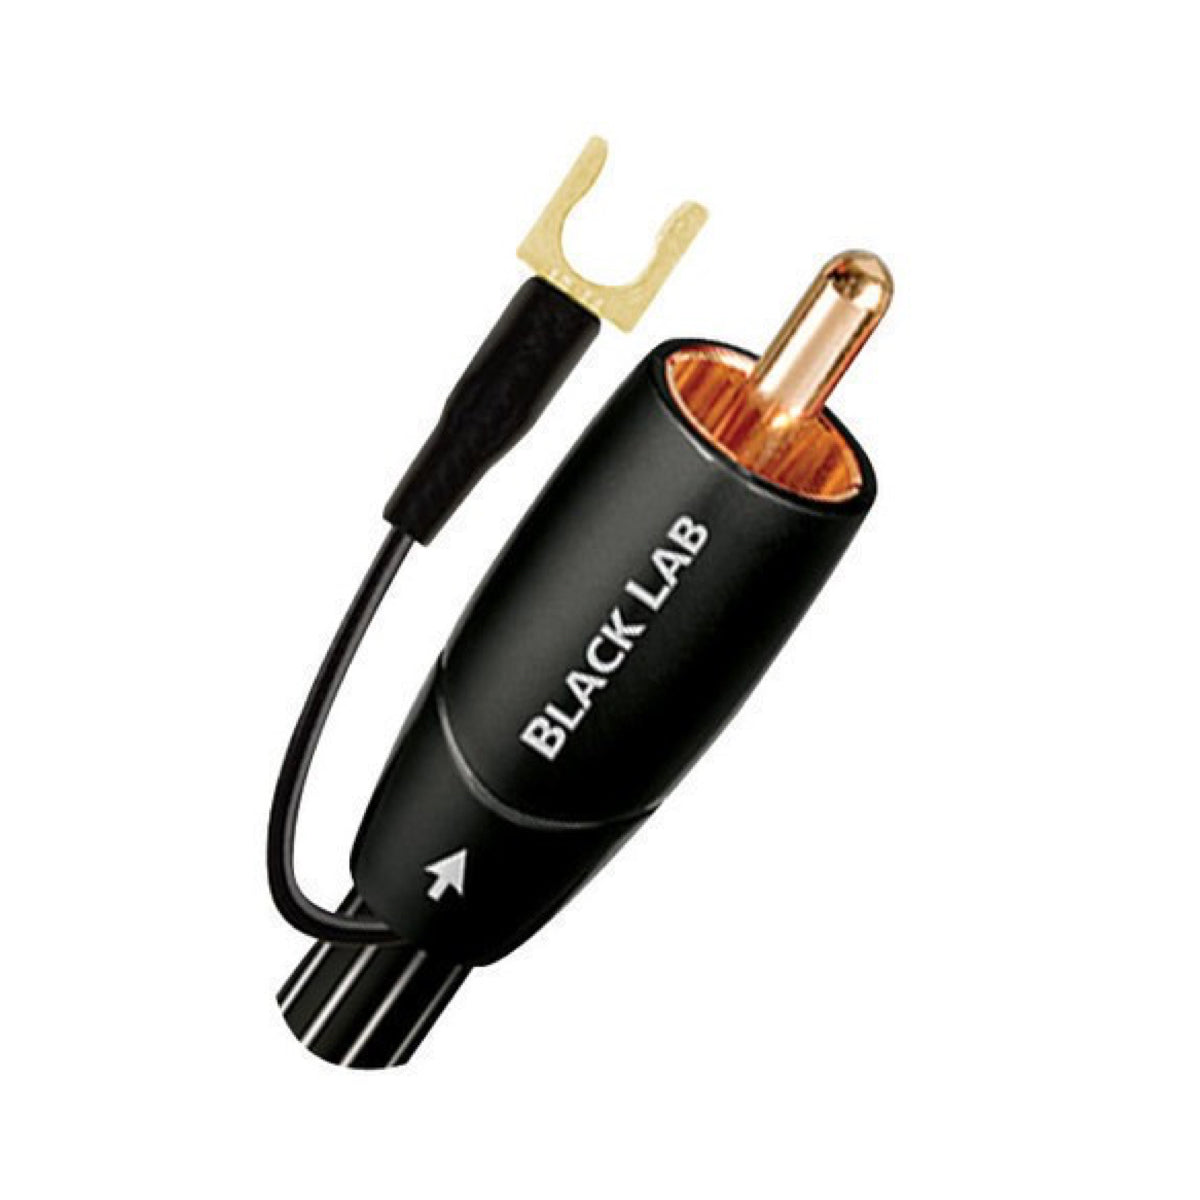 Audioquest Black Lab - Subwoofer Cable, AudioQuest, Subwoofer Cable - AVStore.in